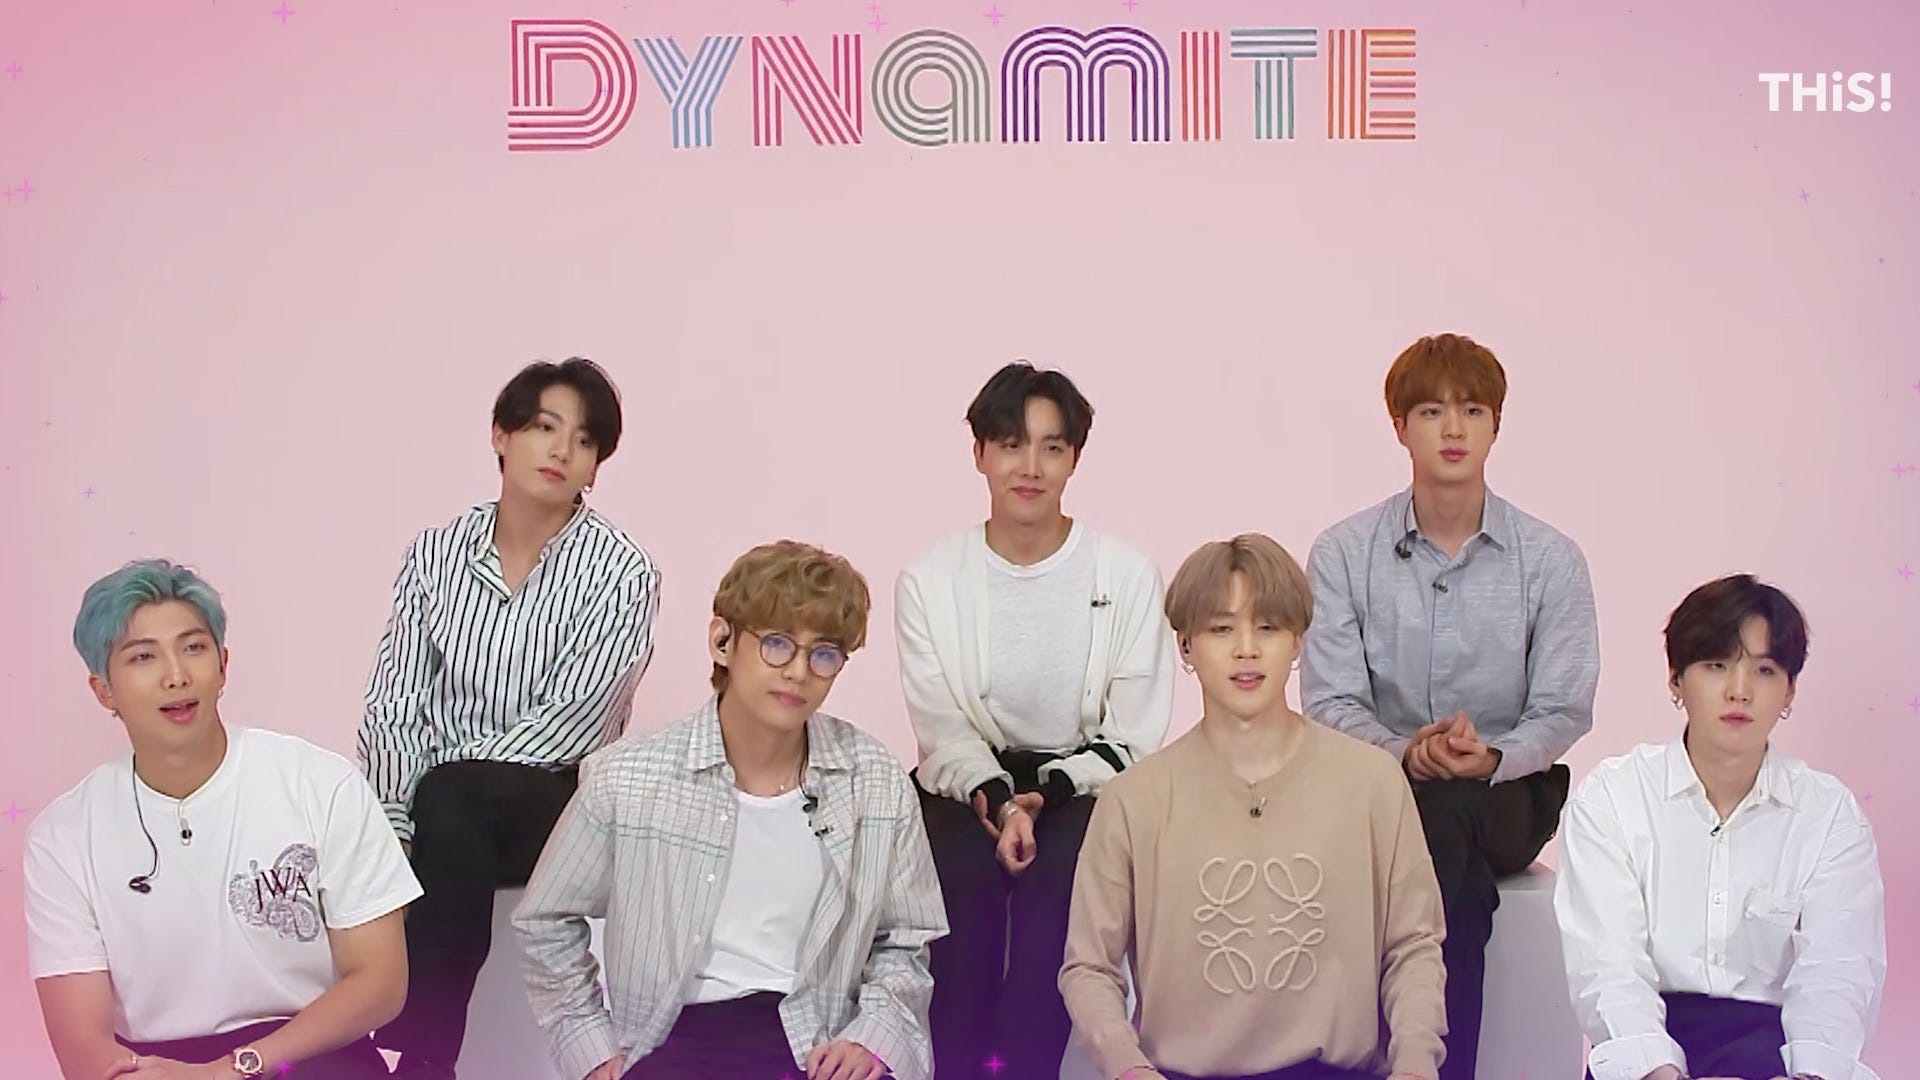 Dynamite BTS Wallpapers   Top Free Dynamite BTS Backgrounds ...